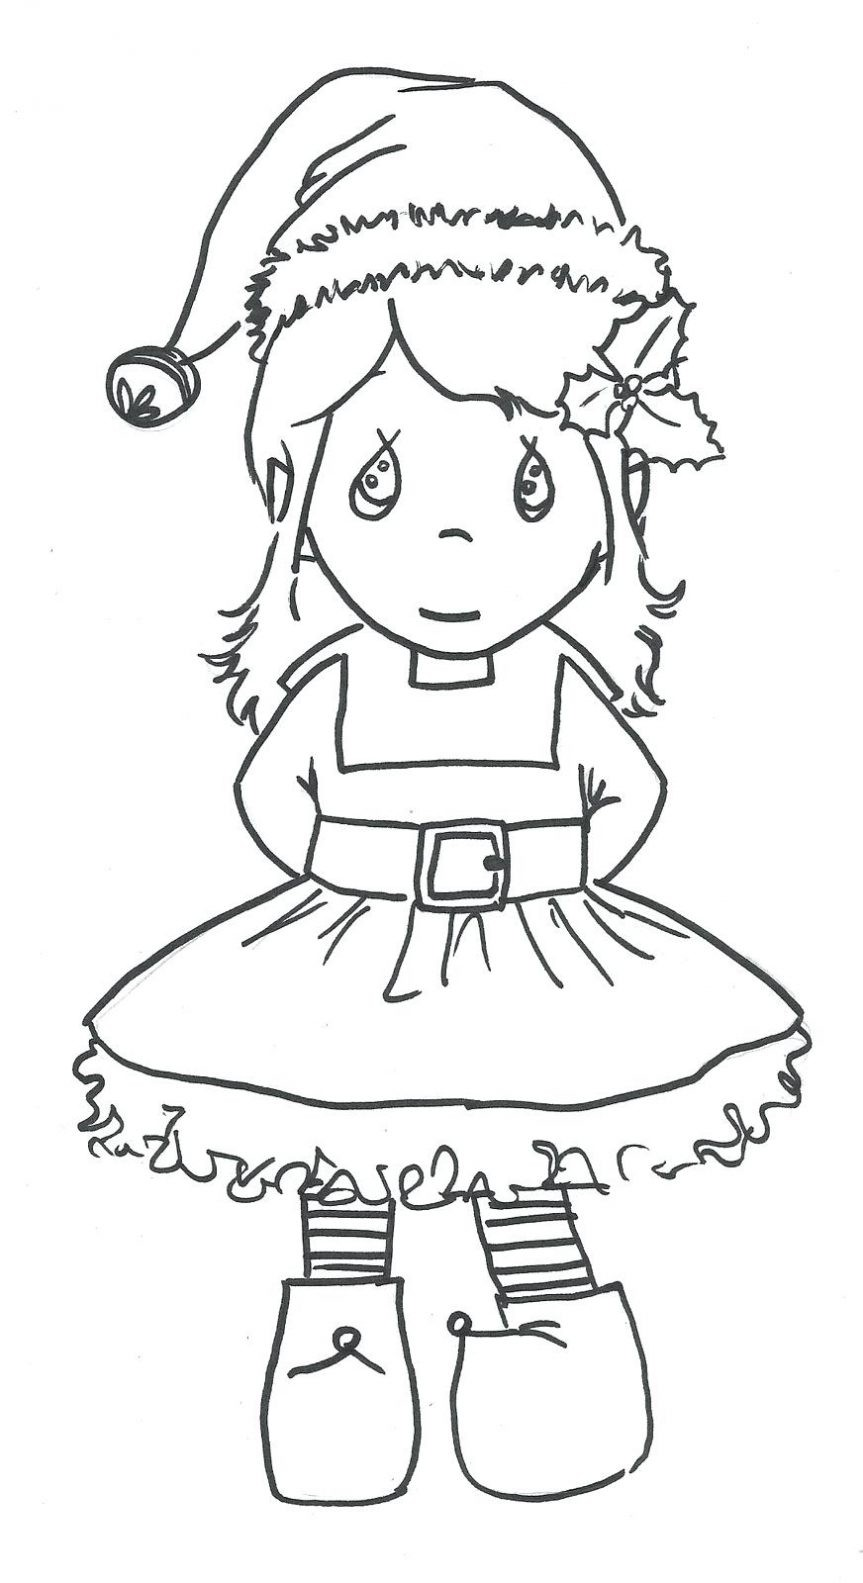 863x1583 Free Elf Coloring Page Printable Nice Christmas Pages On The Shelf